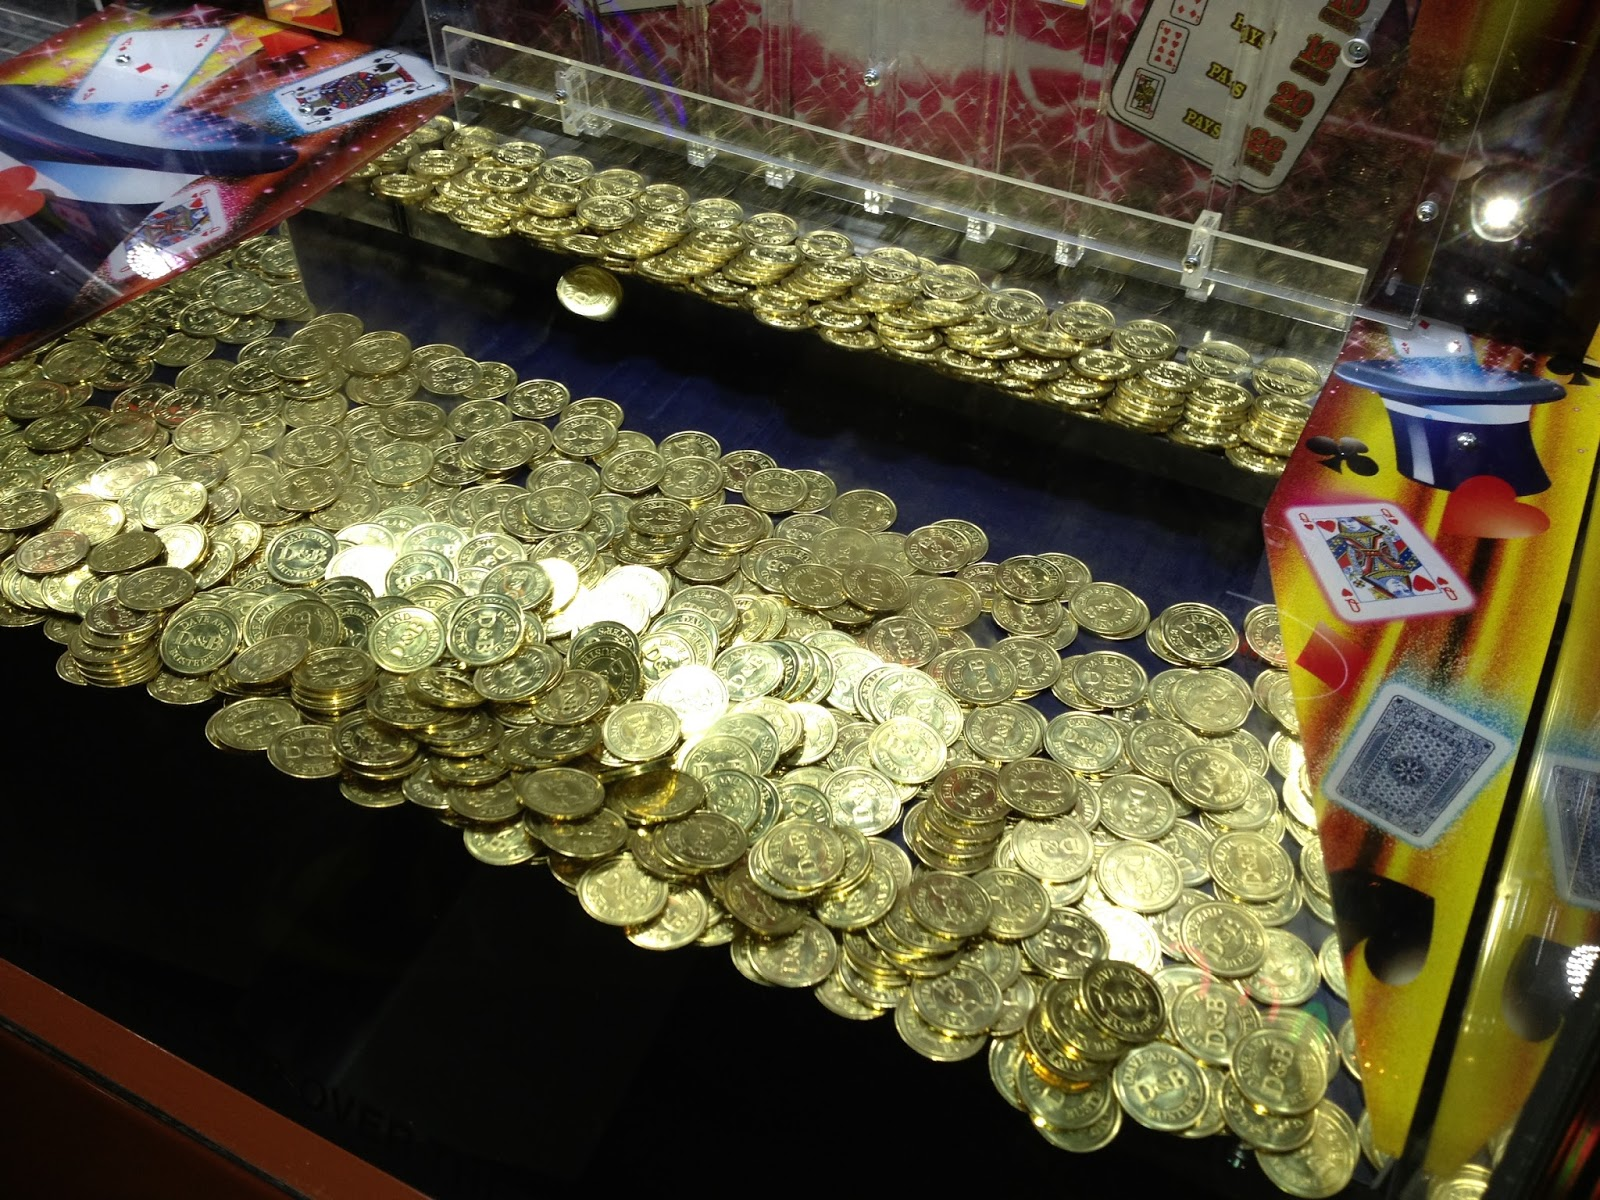 Dave and busters printable coupons january 2013 - I Don T Trust Dave And Busters Anymore And When You Don T Trust Someone You Loss The Excitement And The Fun